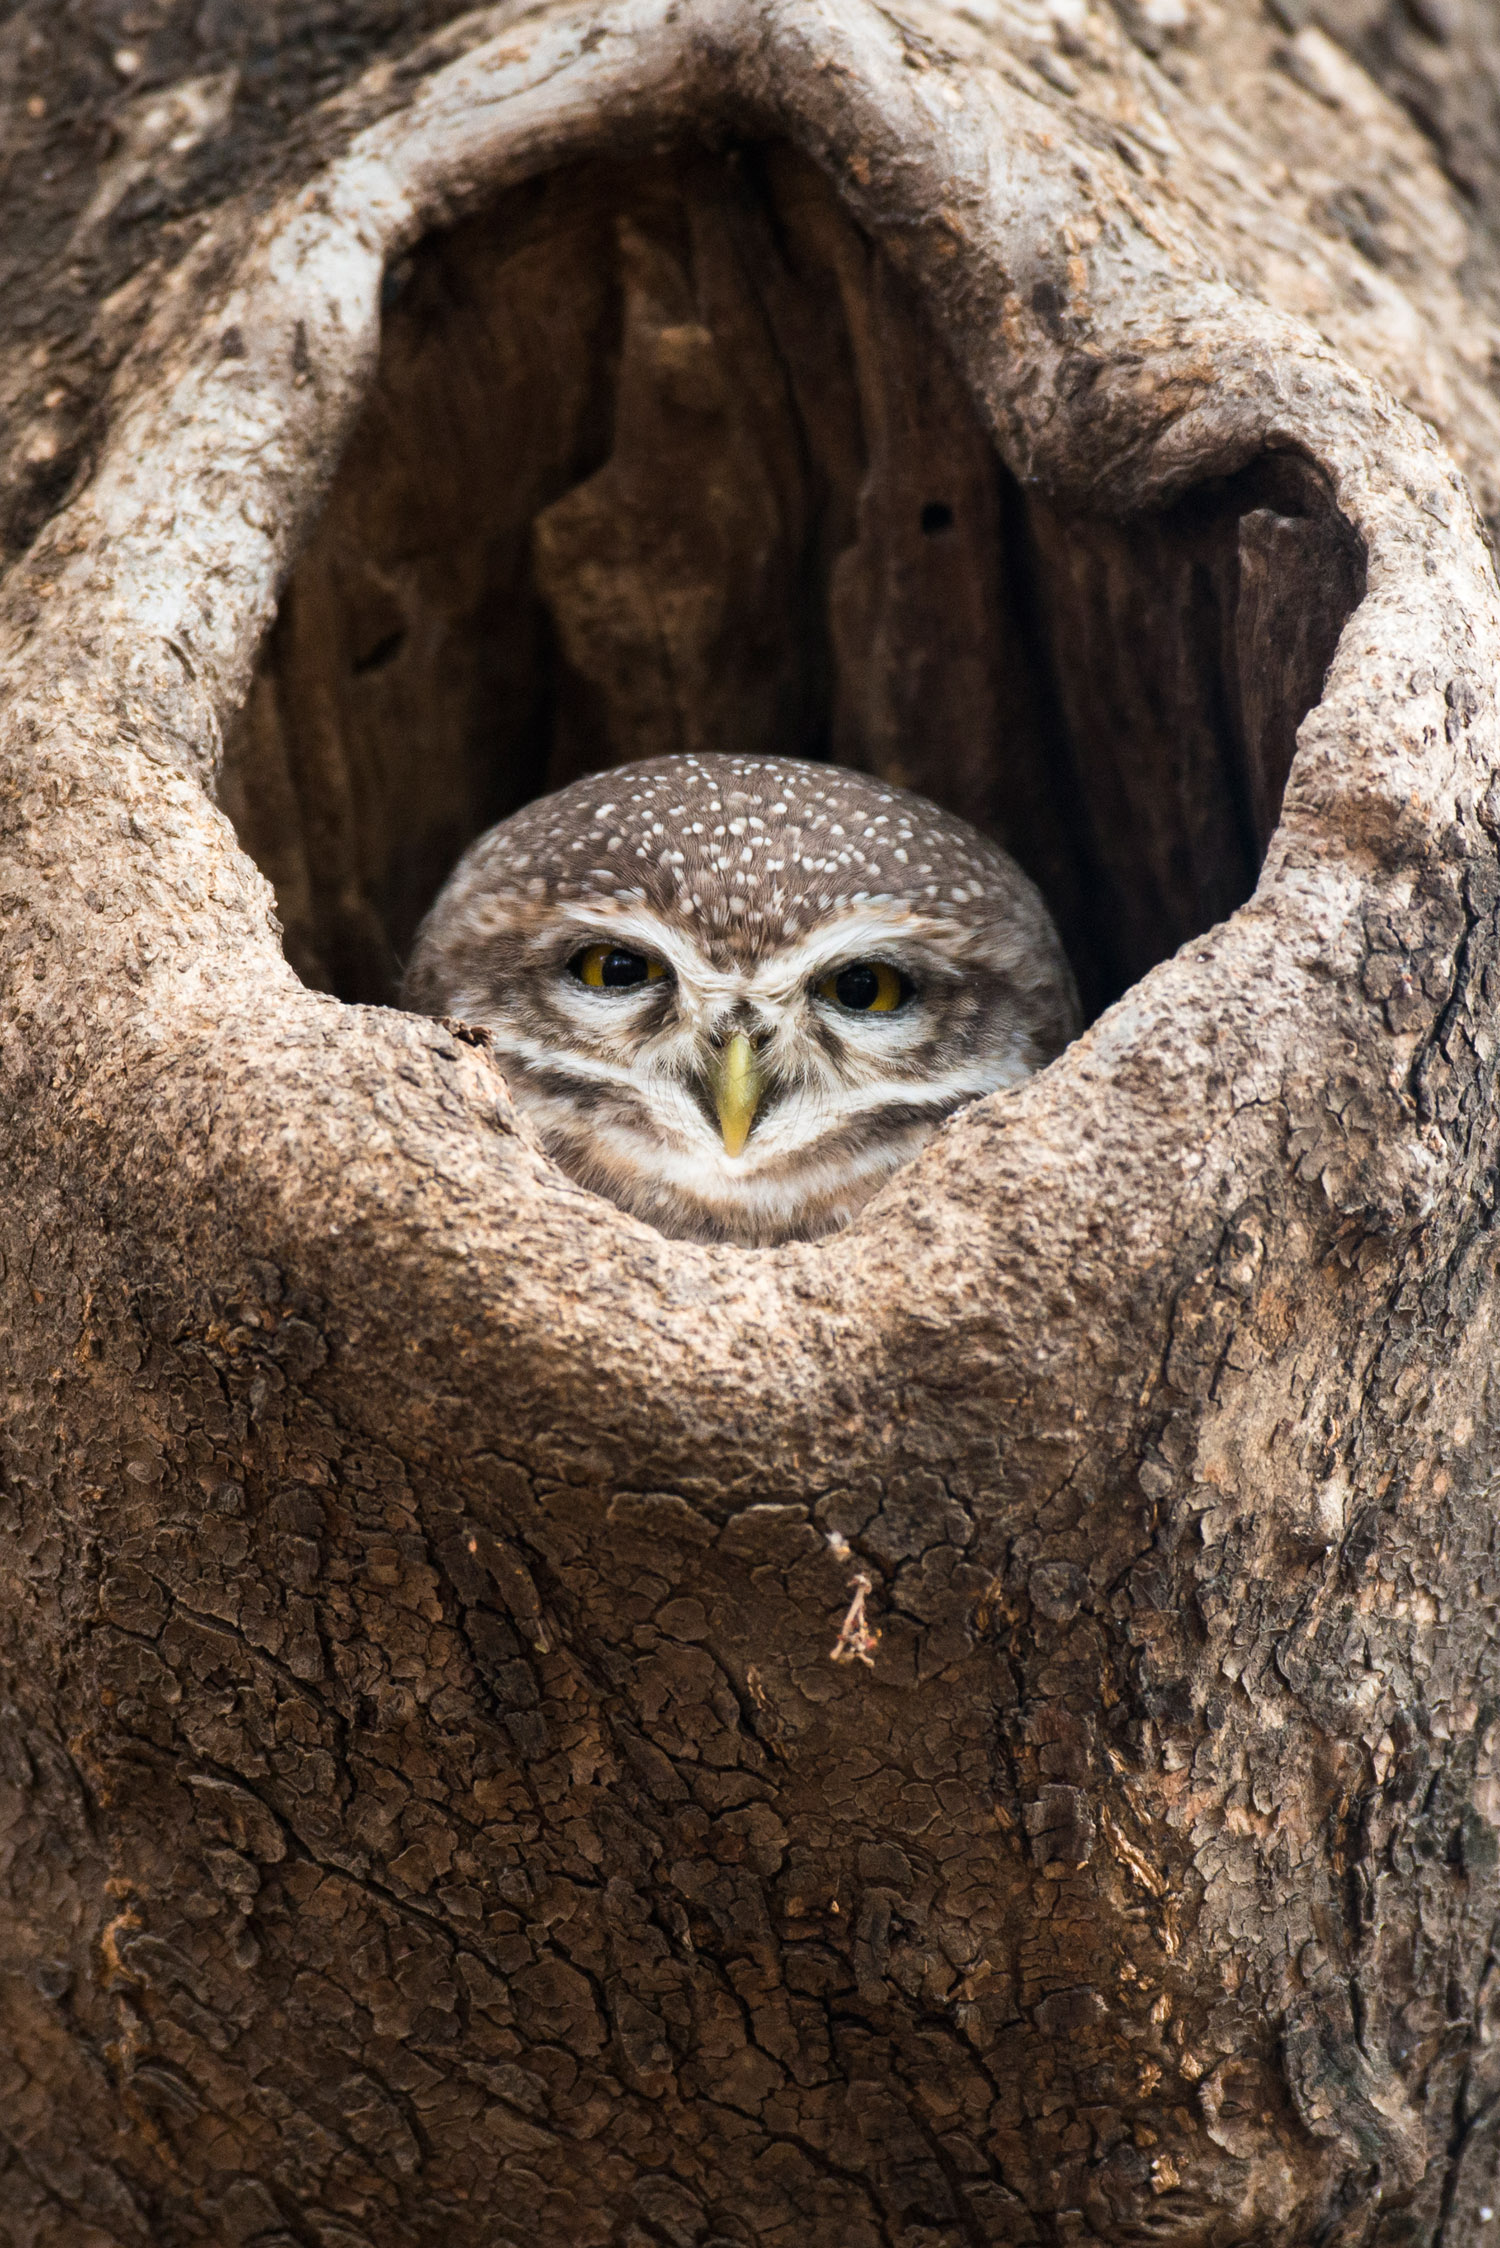 Spotted owlet in tree hollow, Ranthambhore National Park, Rajasthan, India